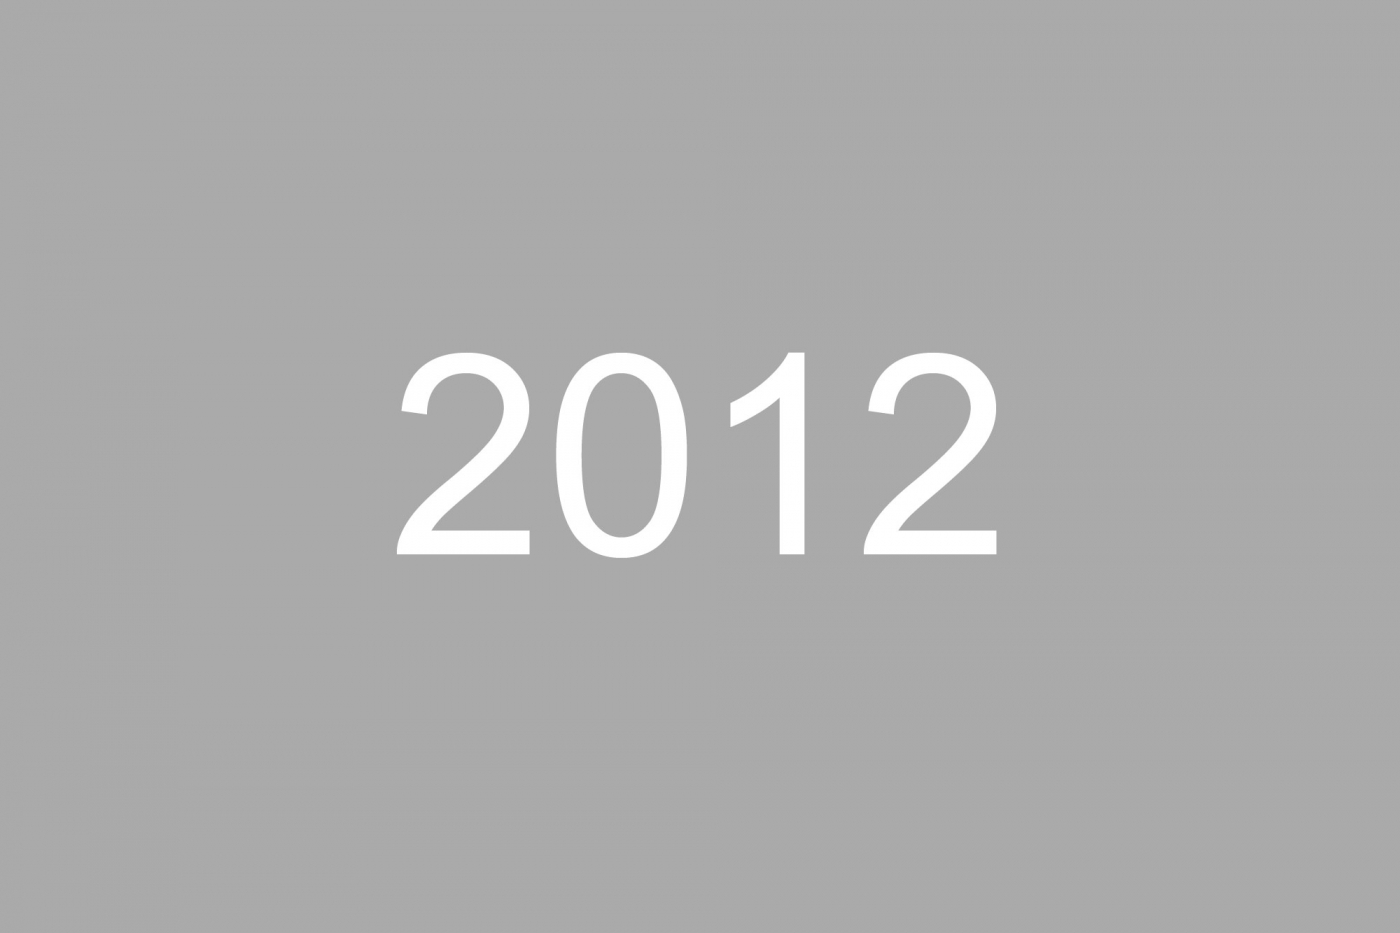 2012 News Archive